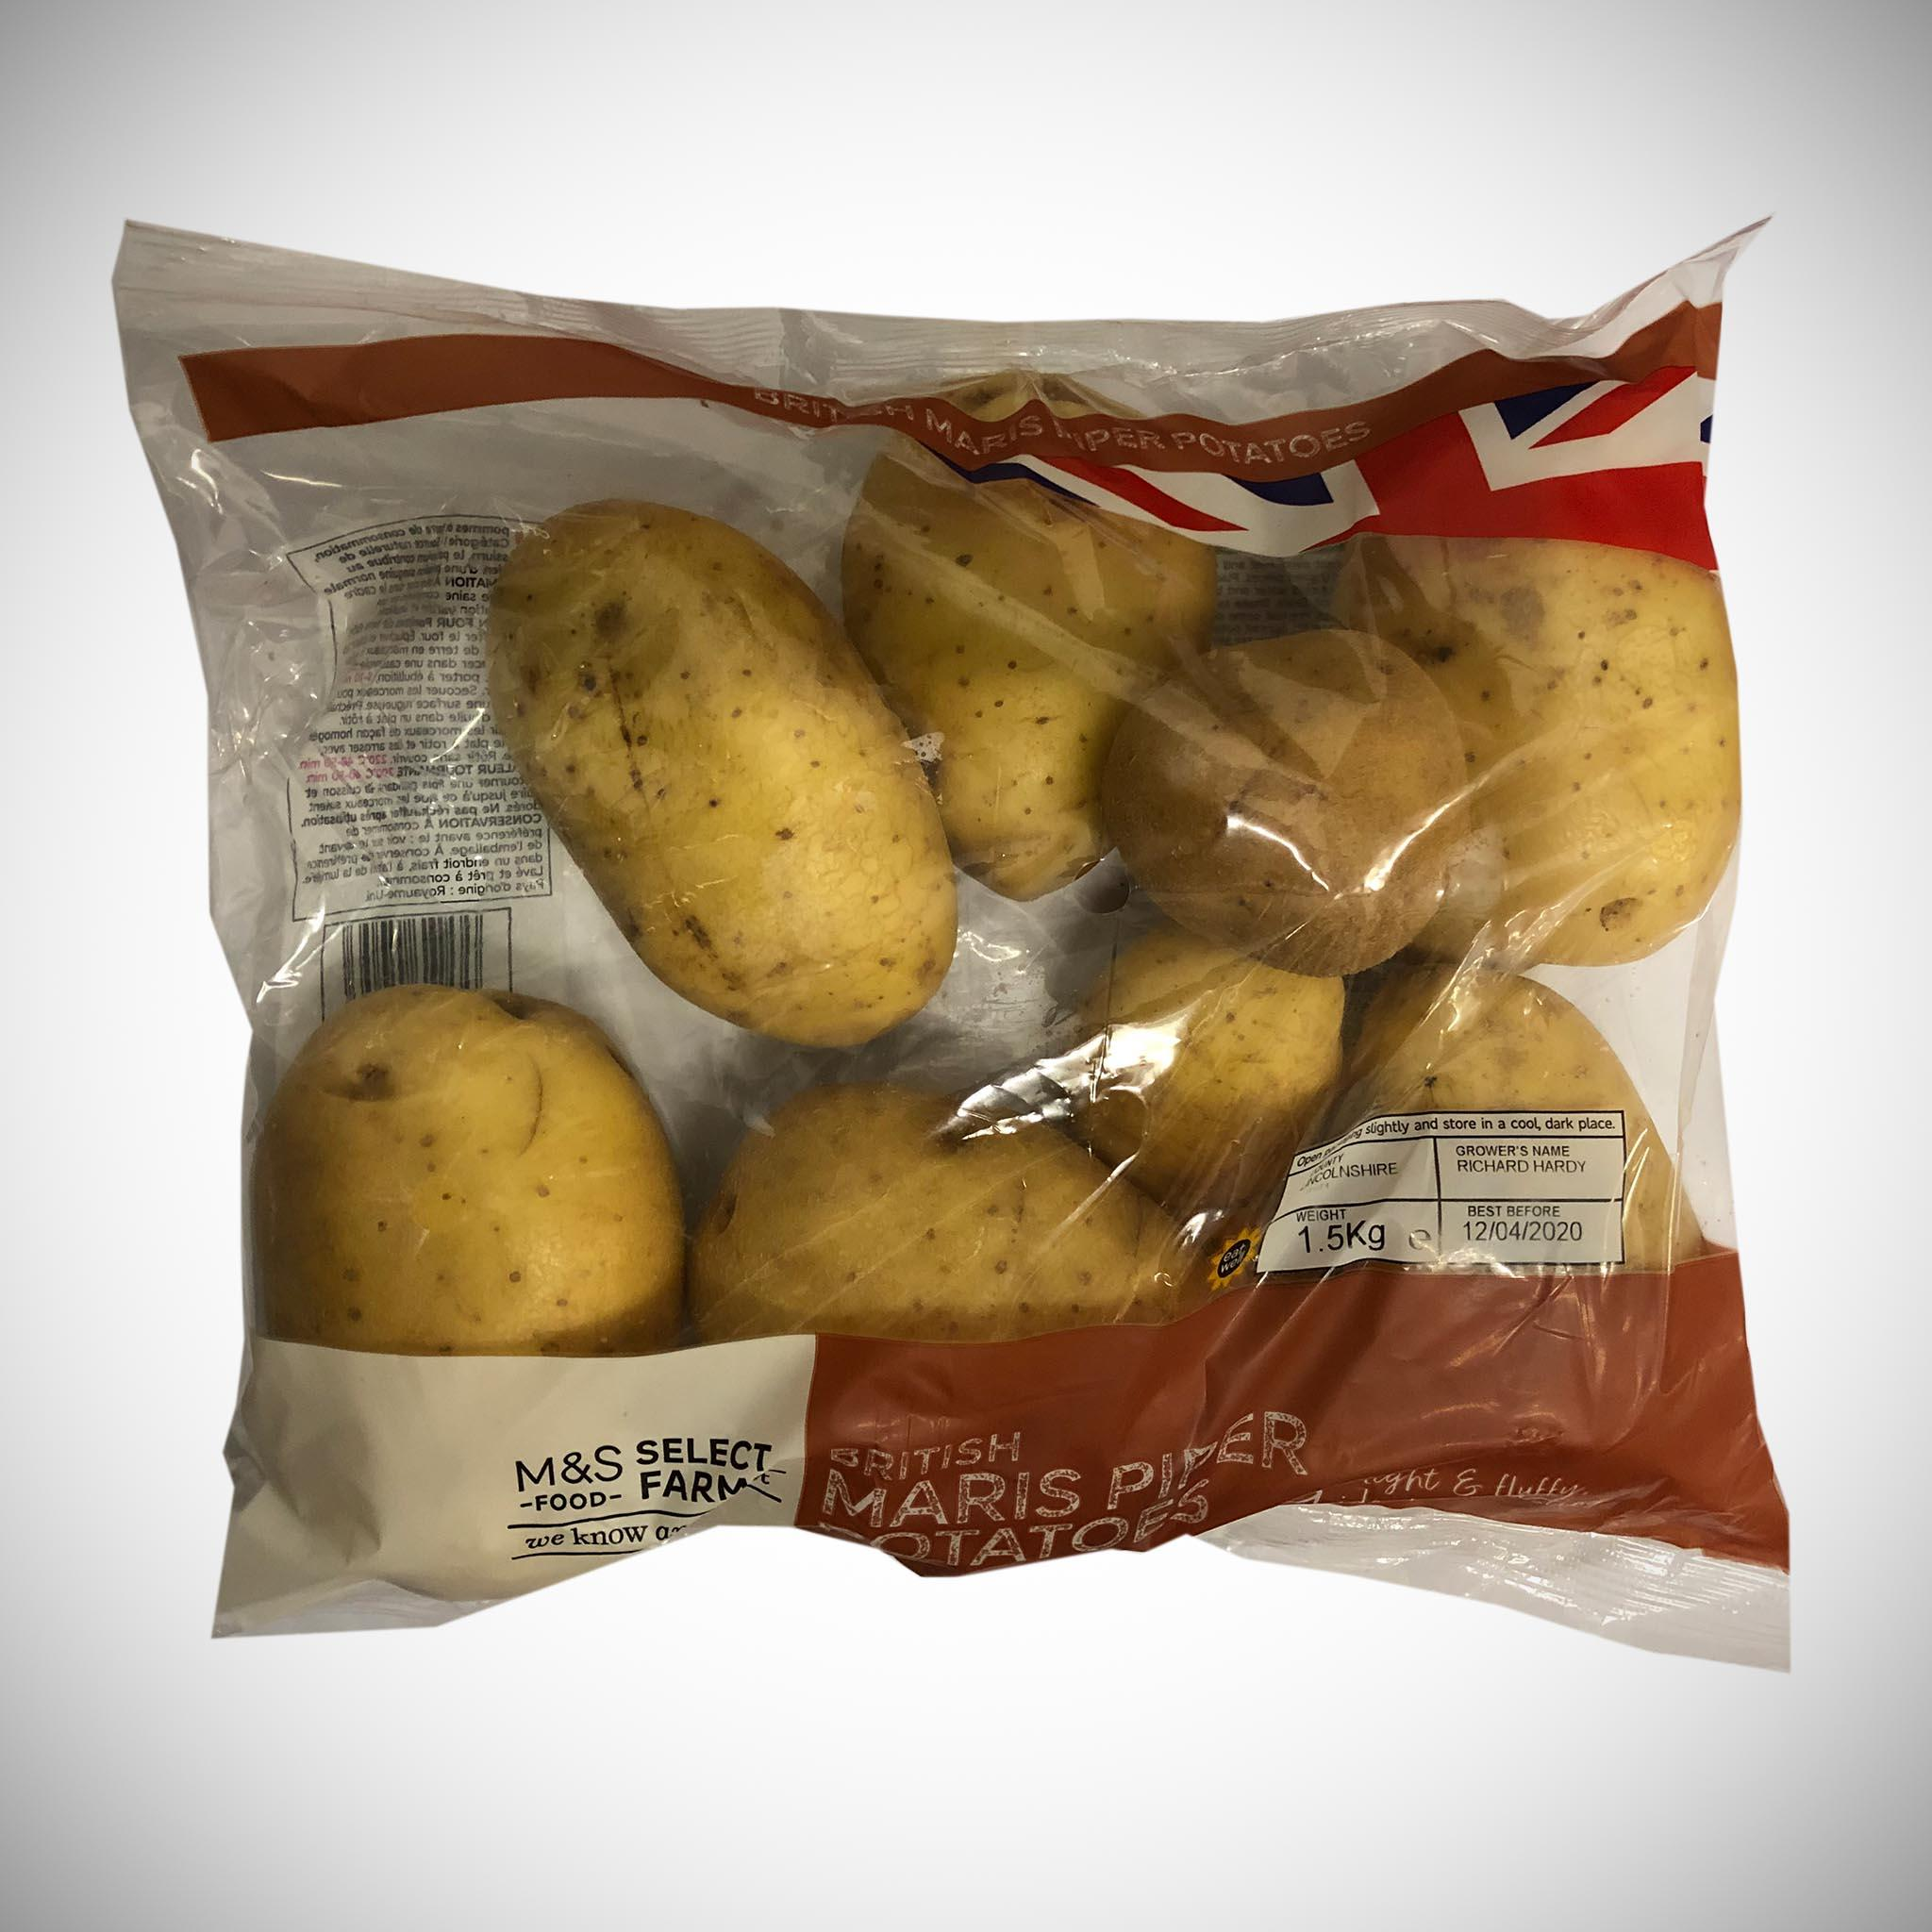 Maris Piper Potatoes 1.5kg